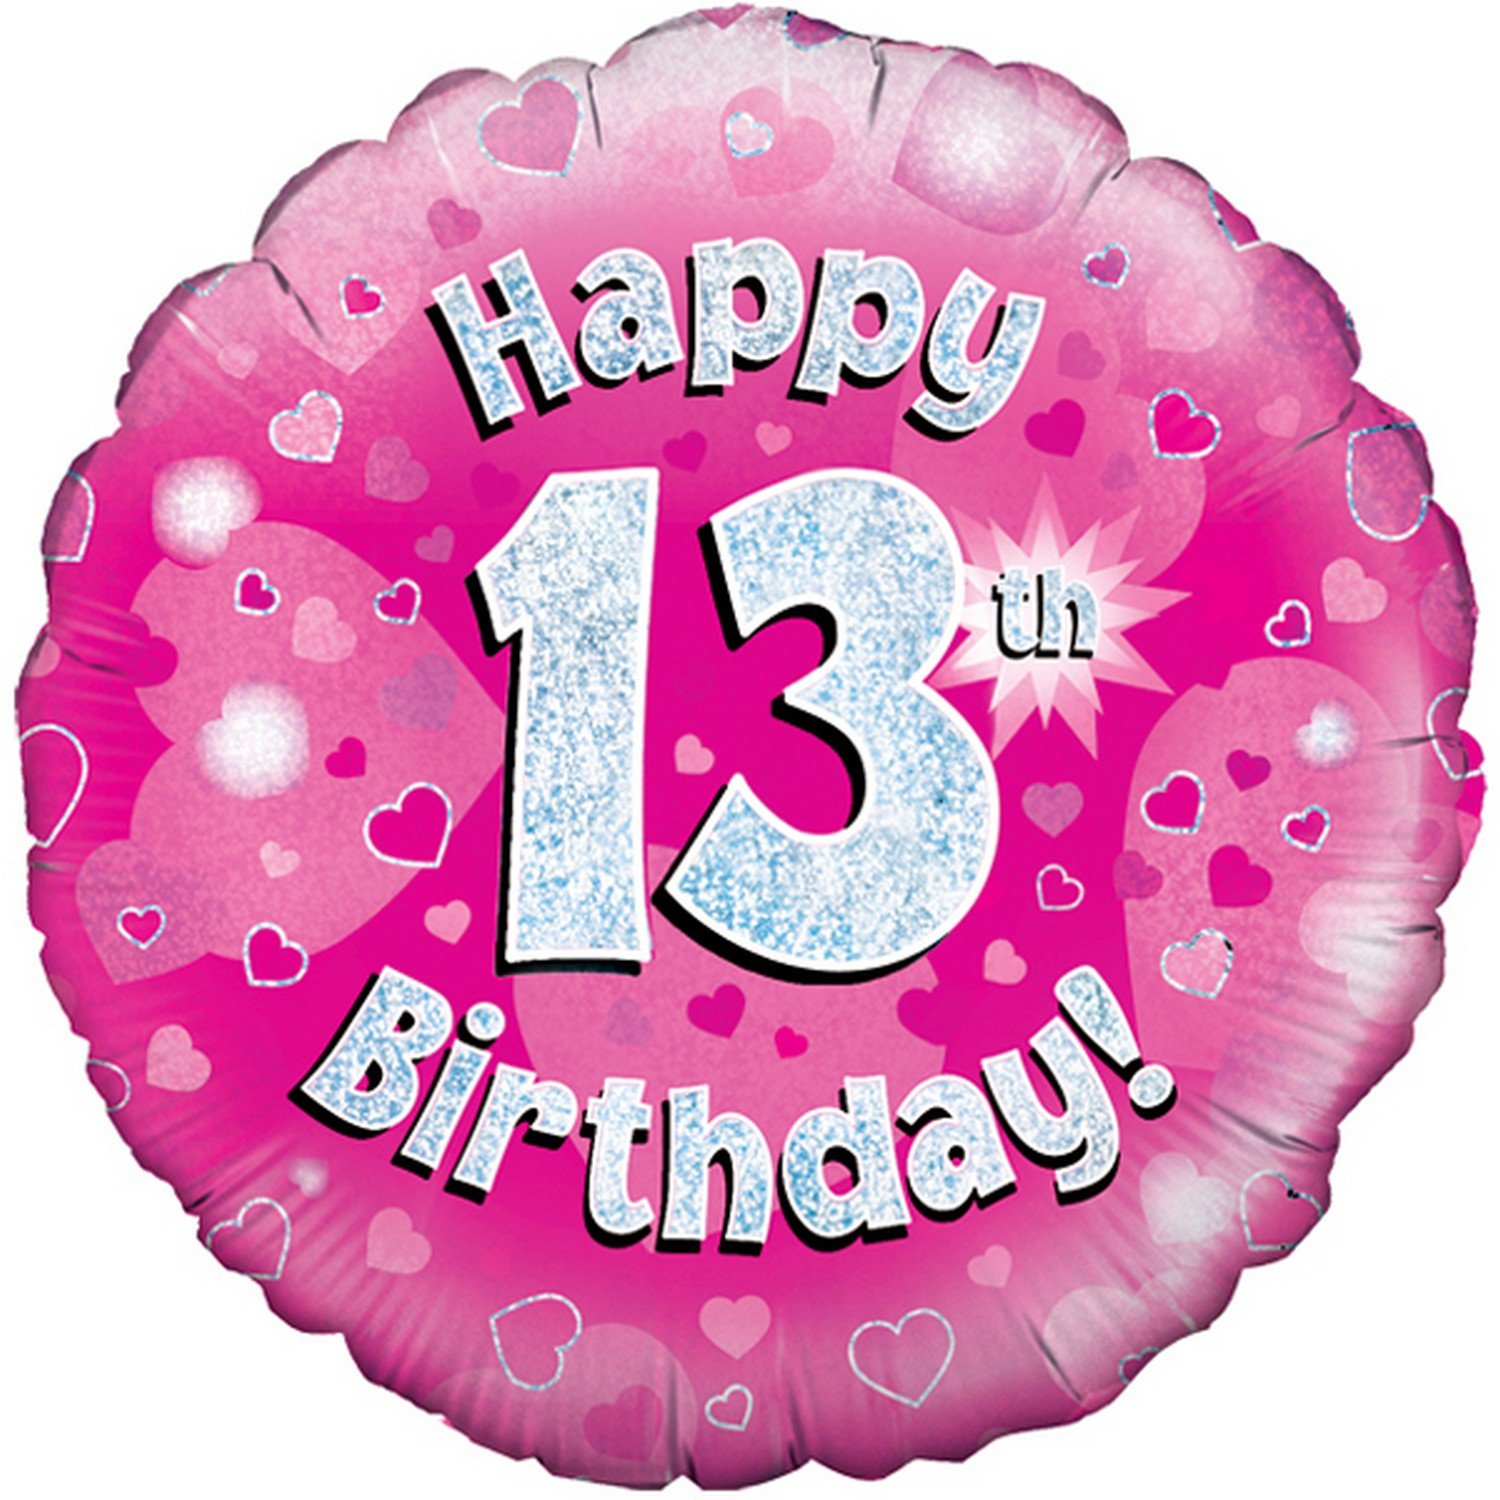 Oaktree 18 Inch Happy 13th Birthday Pink Holographic Balloon (One Size) (Pink/Silver) UTSG4184_1